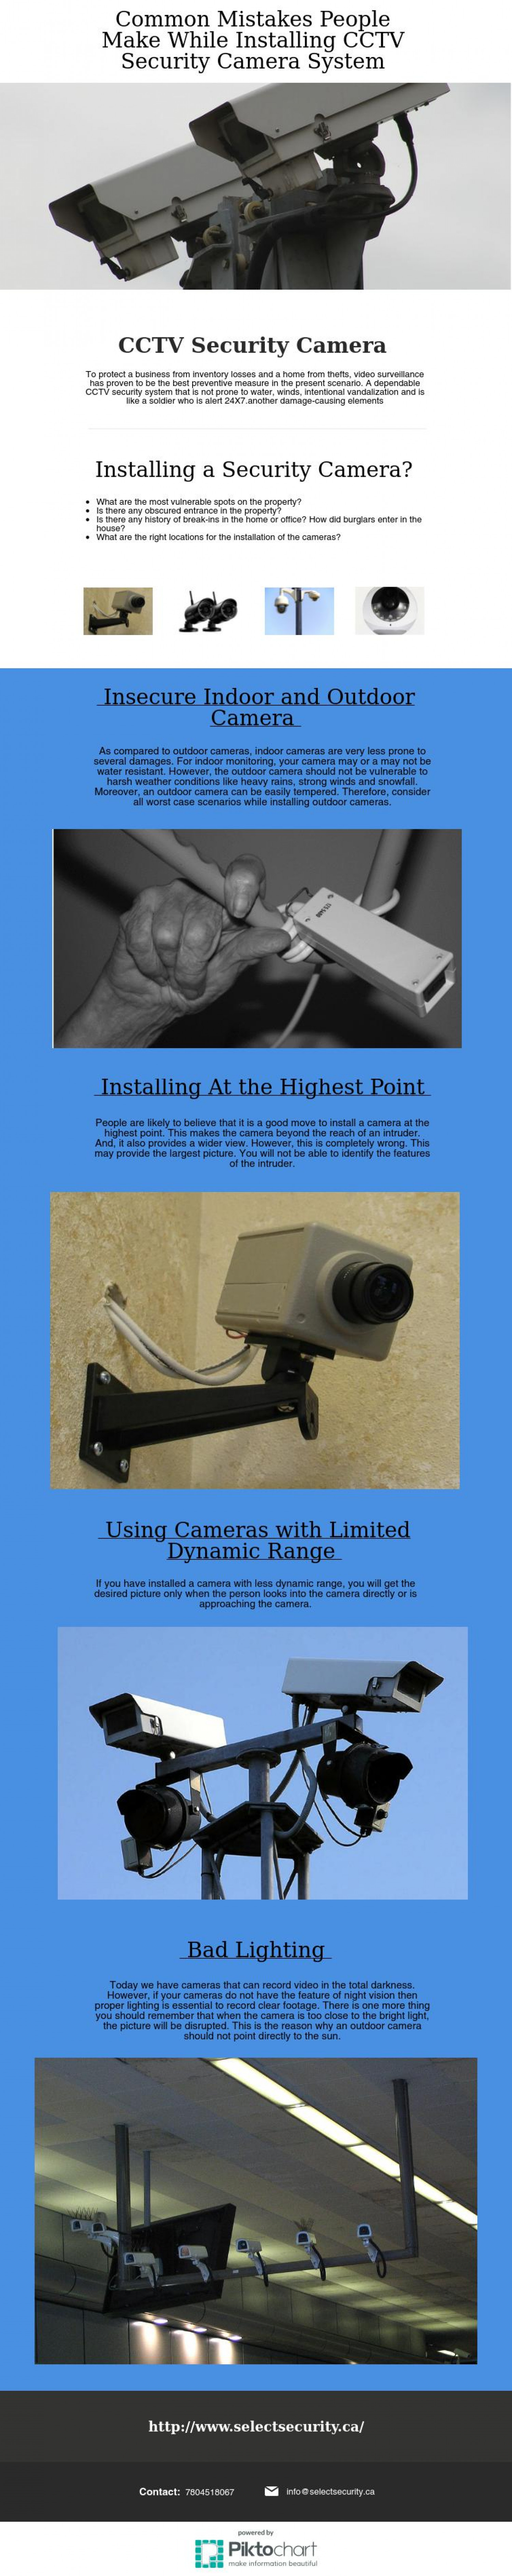 Common Mistakes People Make While Installing CCTV Security Camera System Infographic